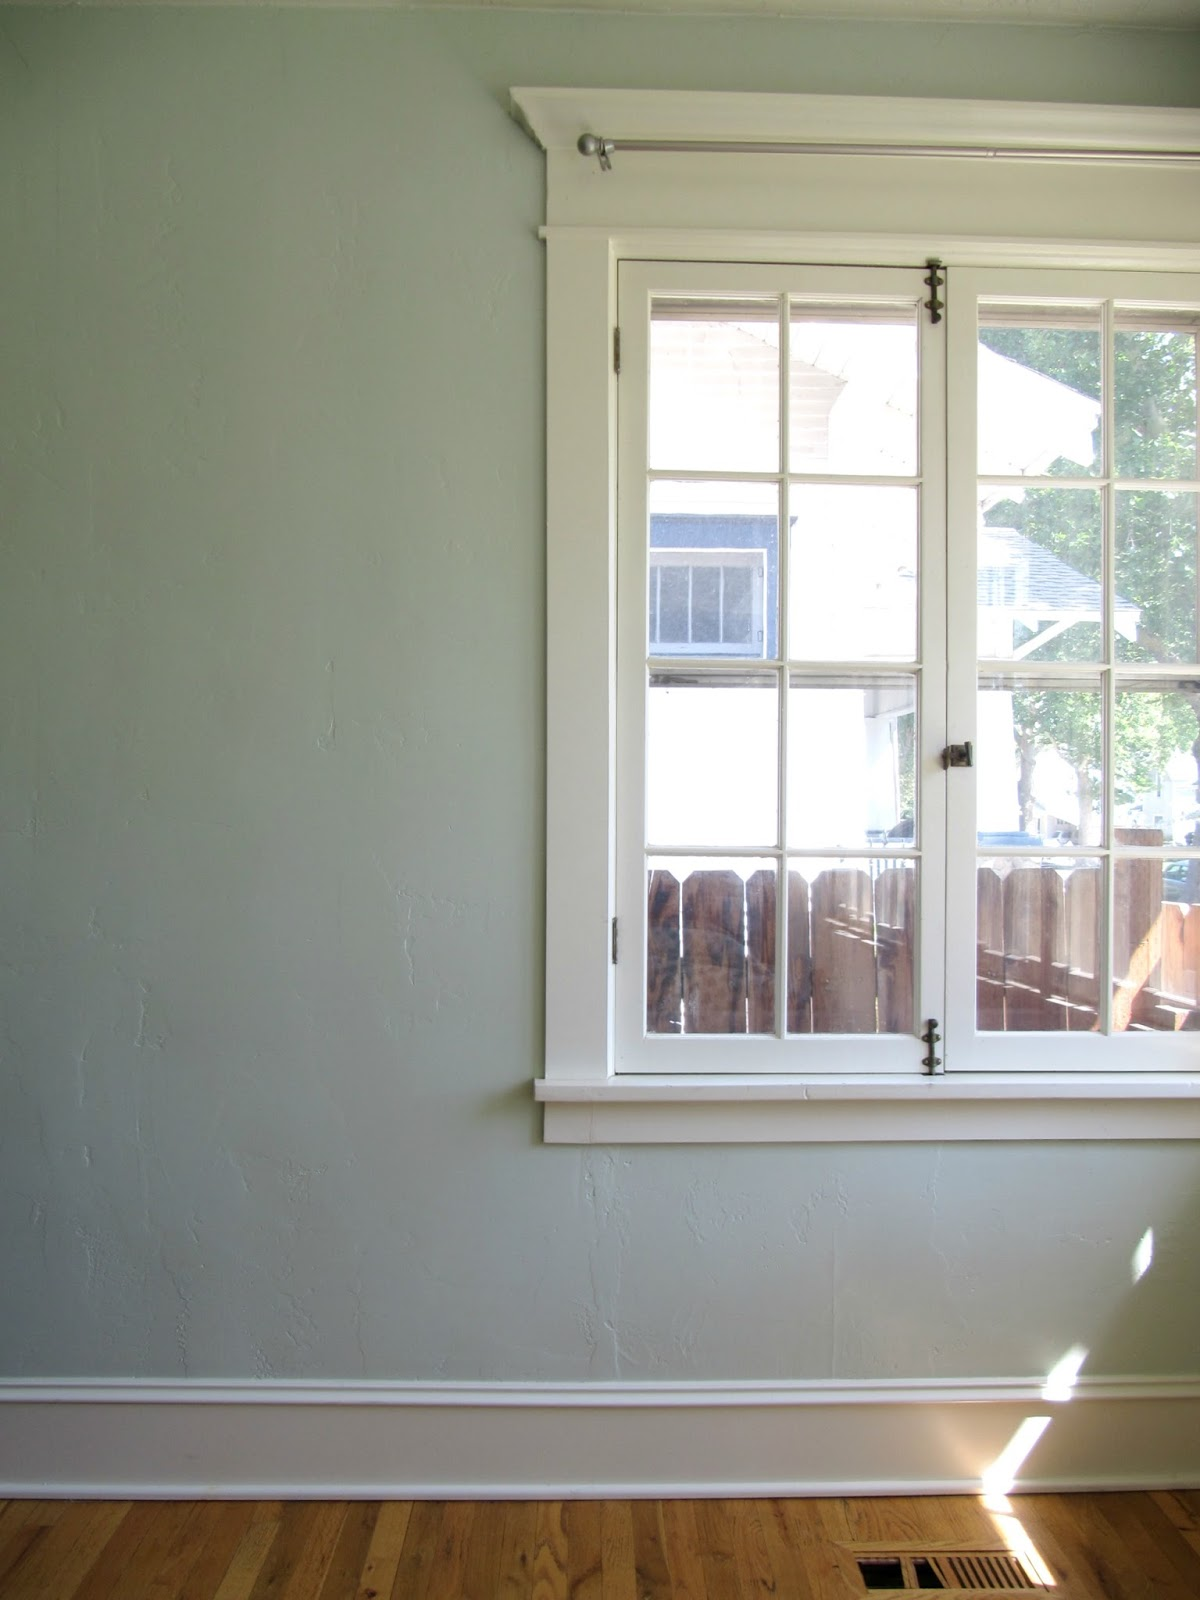 New Paint Amp Clean Windows In The Office The Wicker House